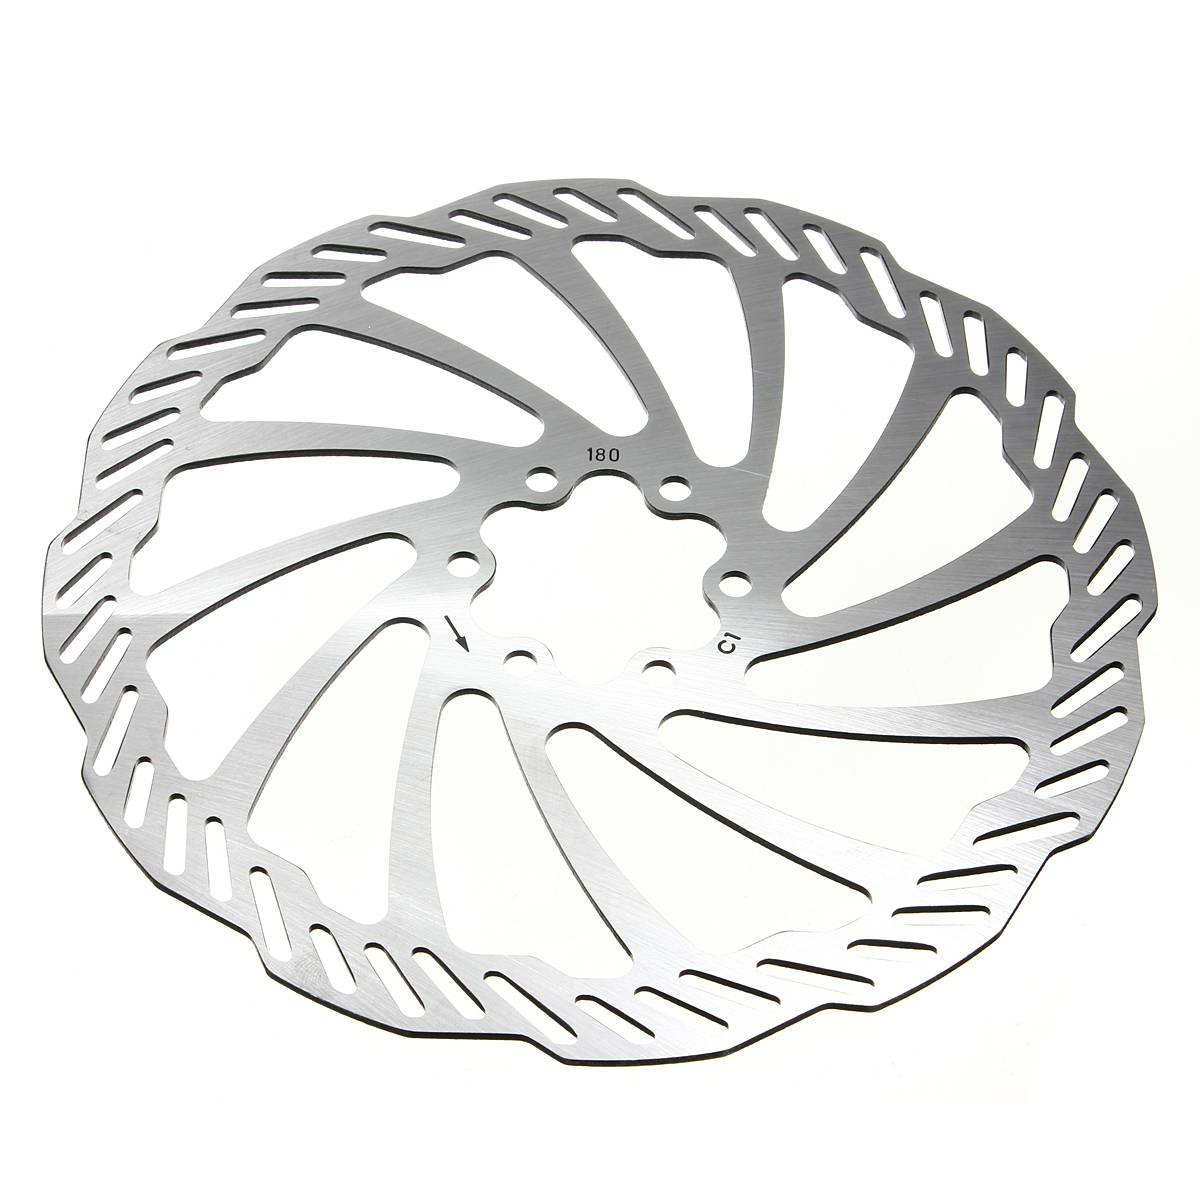 OUTERDO Cycling Bicycle Bike Brake Disc Rotors 120mm/140mm/160mm/180mm/203mm With Bolts 180mm by OUTERDO